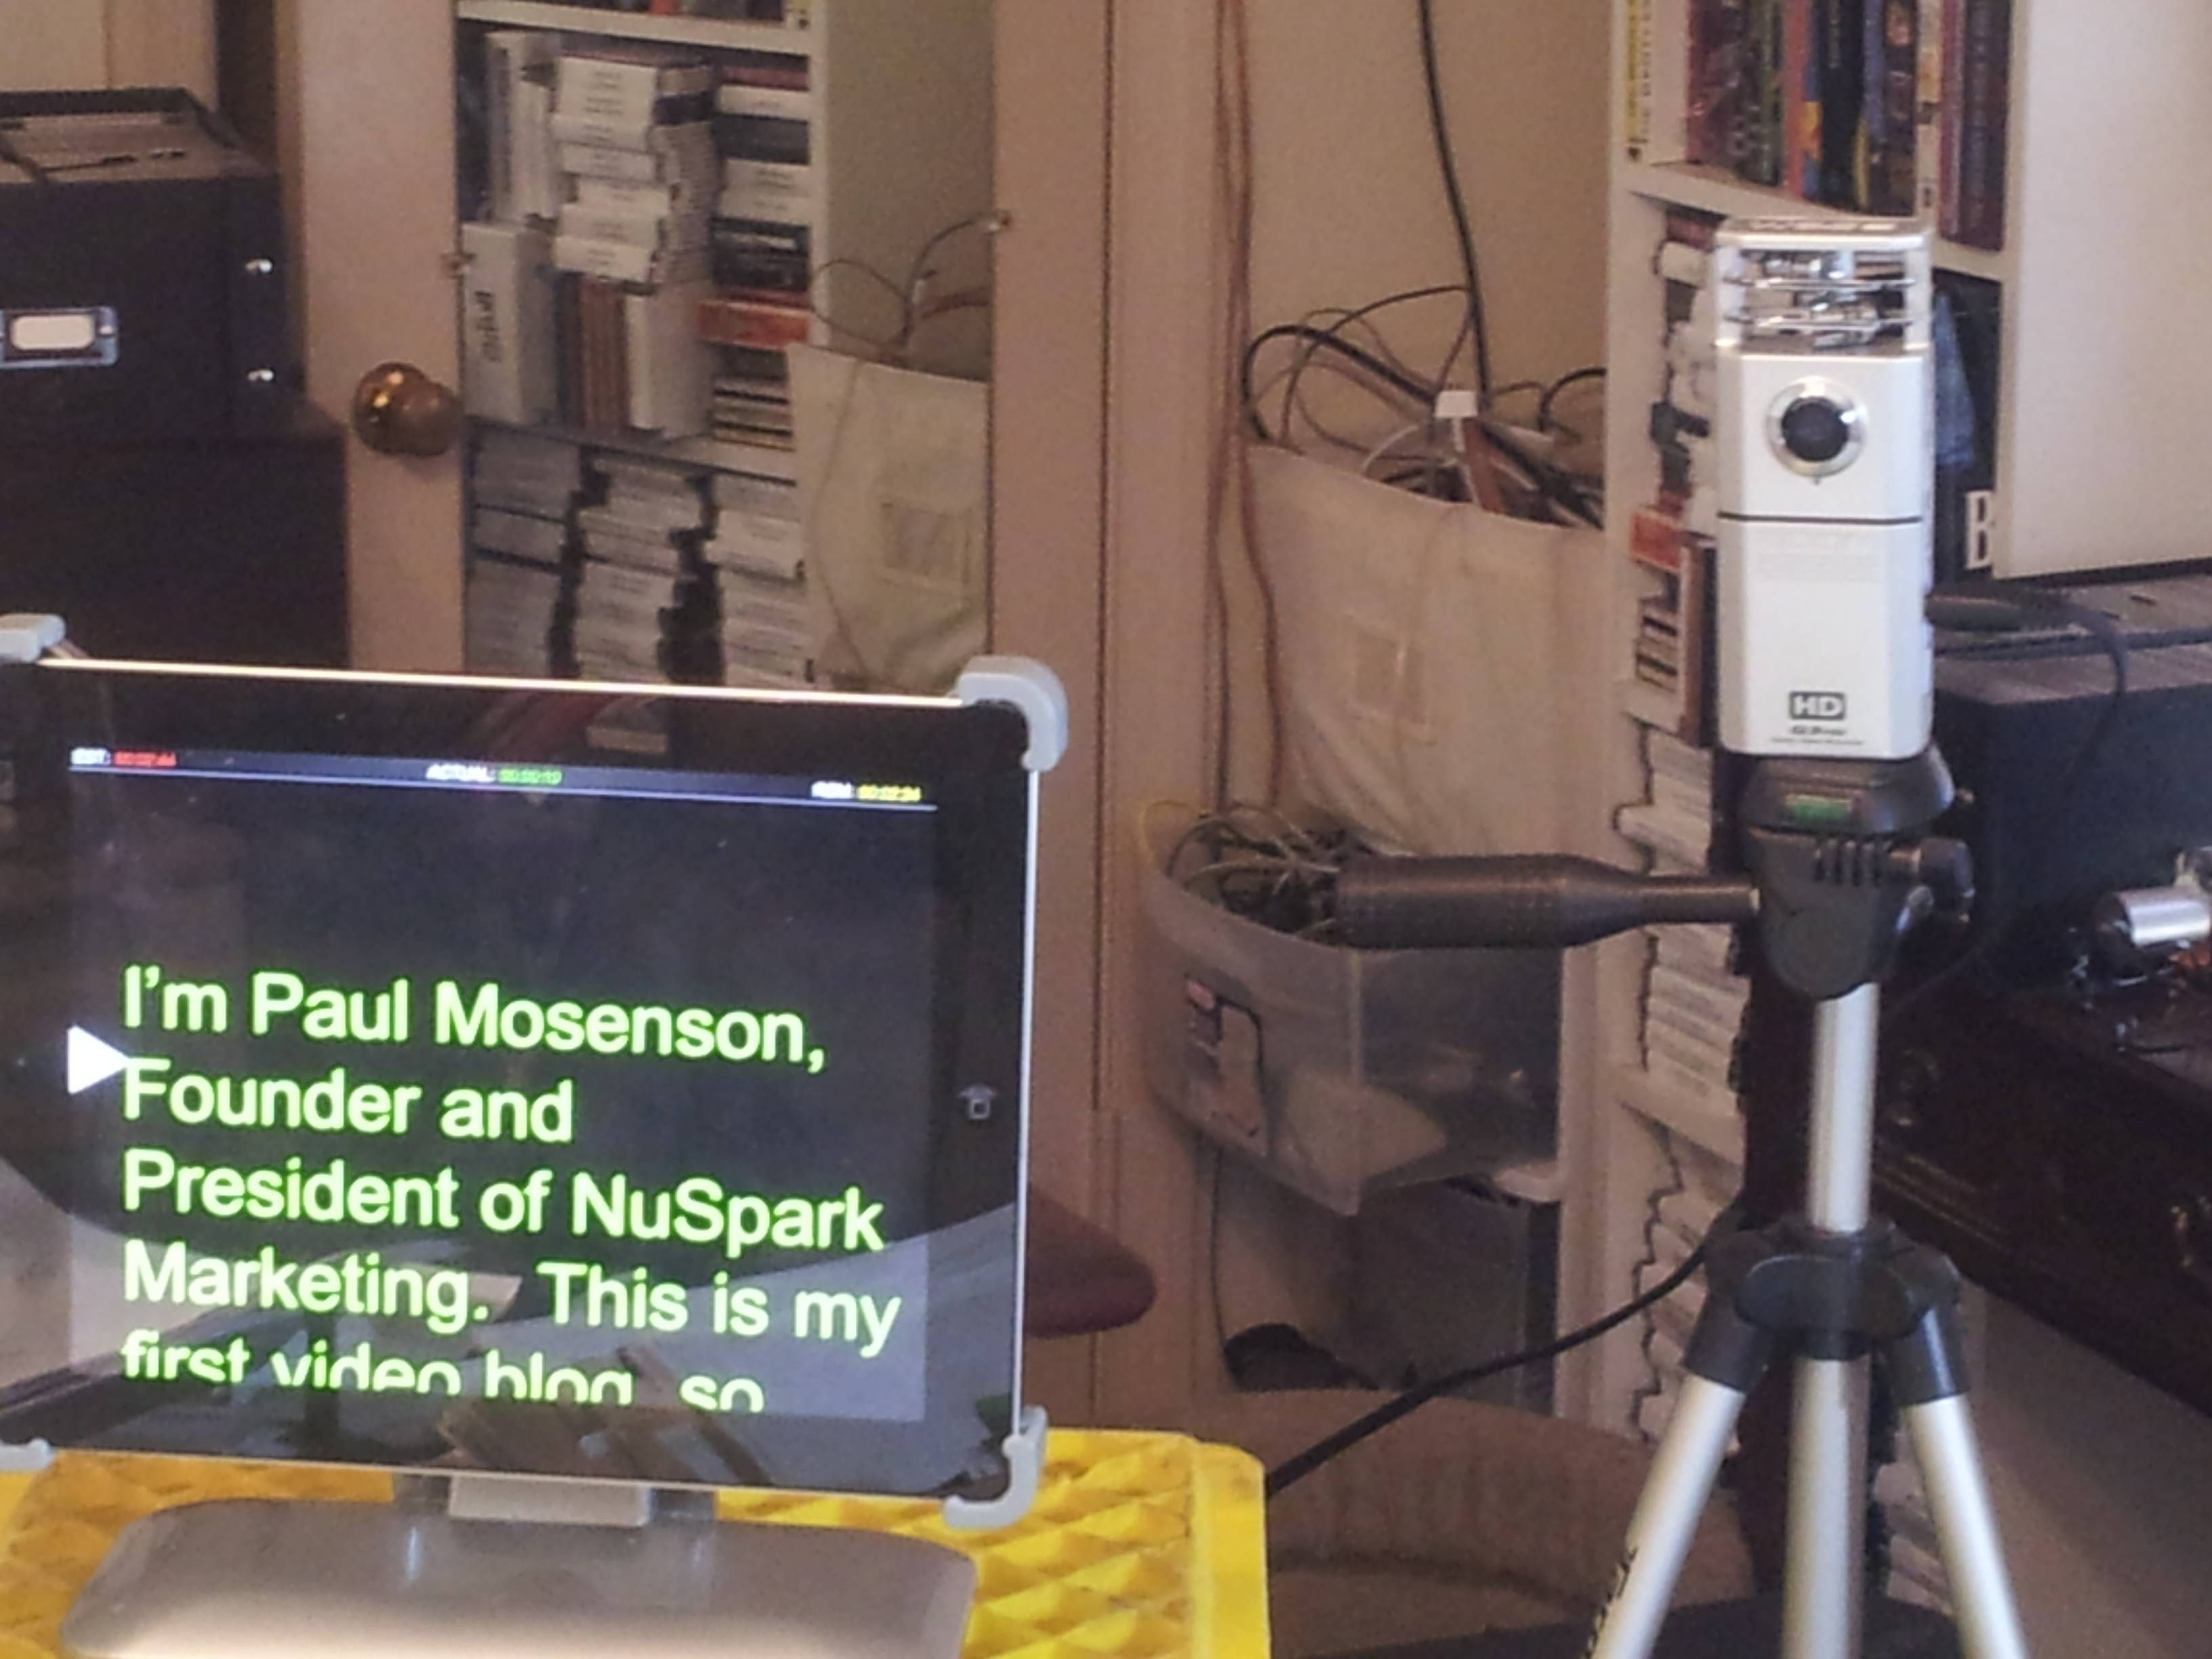 Shooting a video with Zoom digital camera and teleprompter